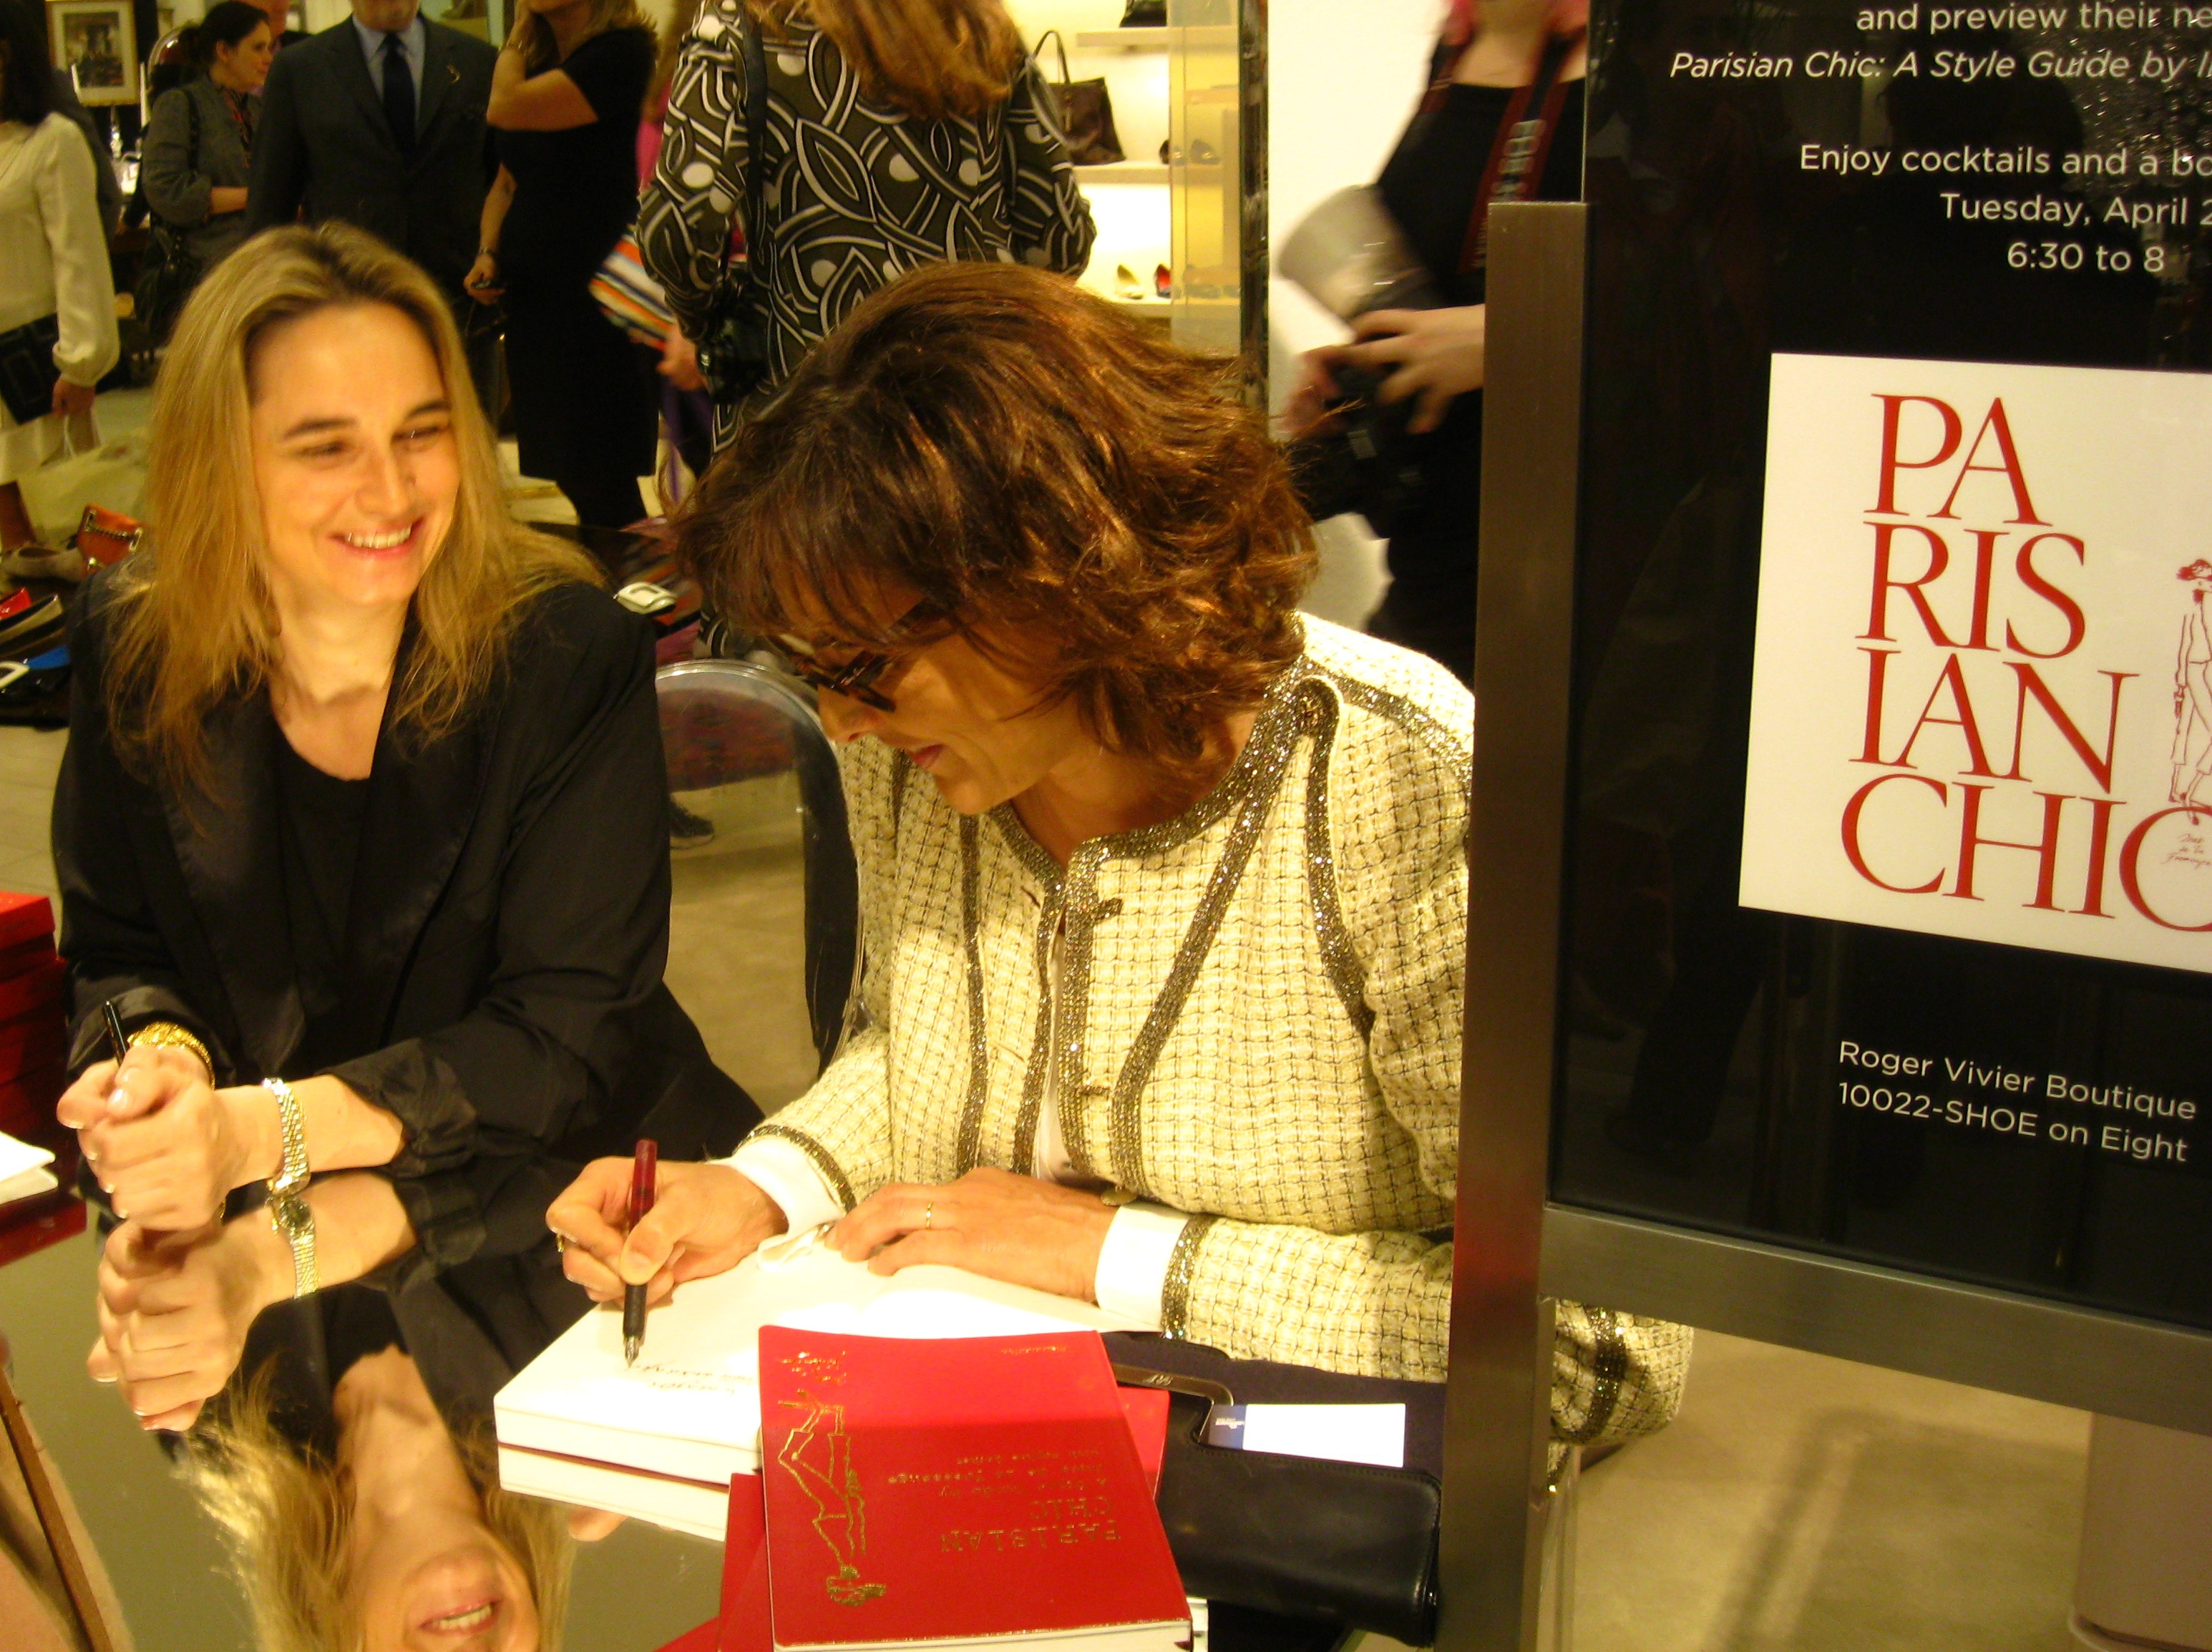 Parisian Chic book signing with Inès de la Fressange in New York ...